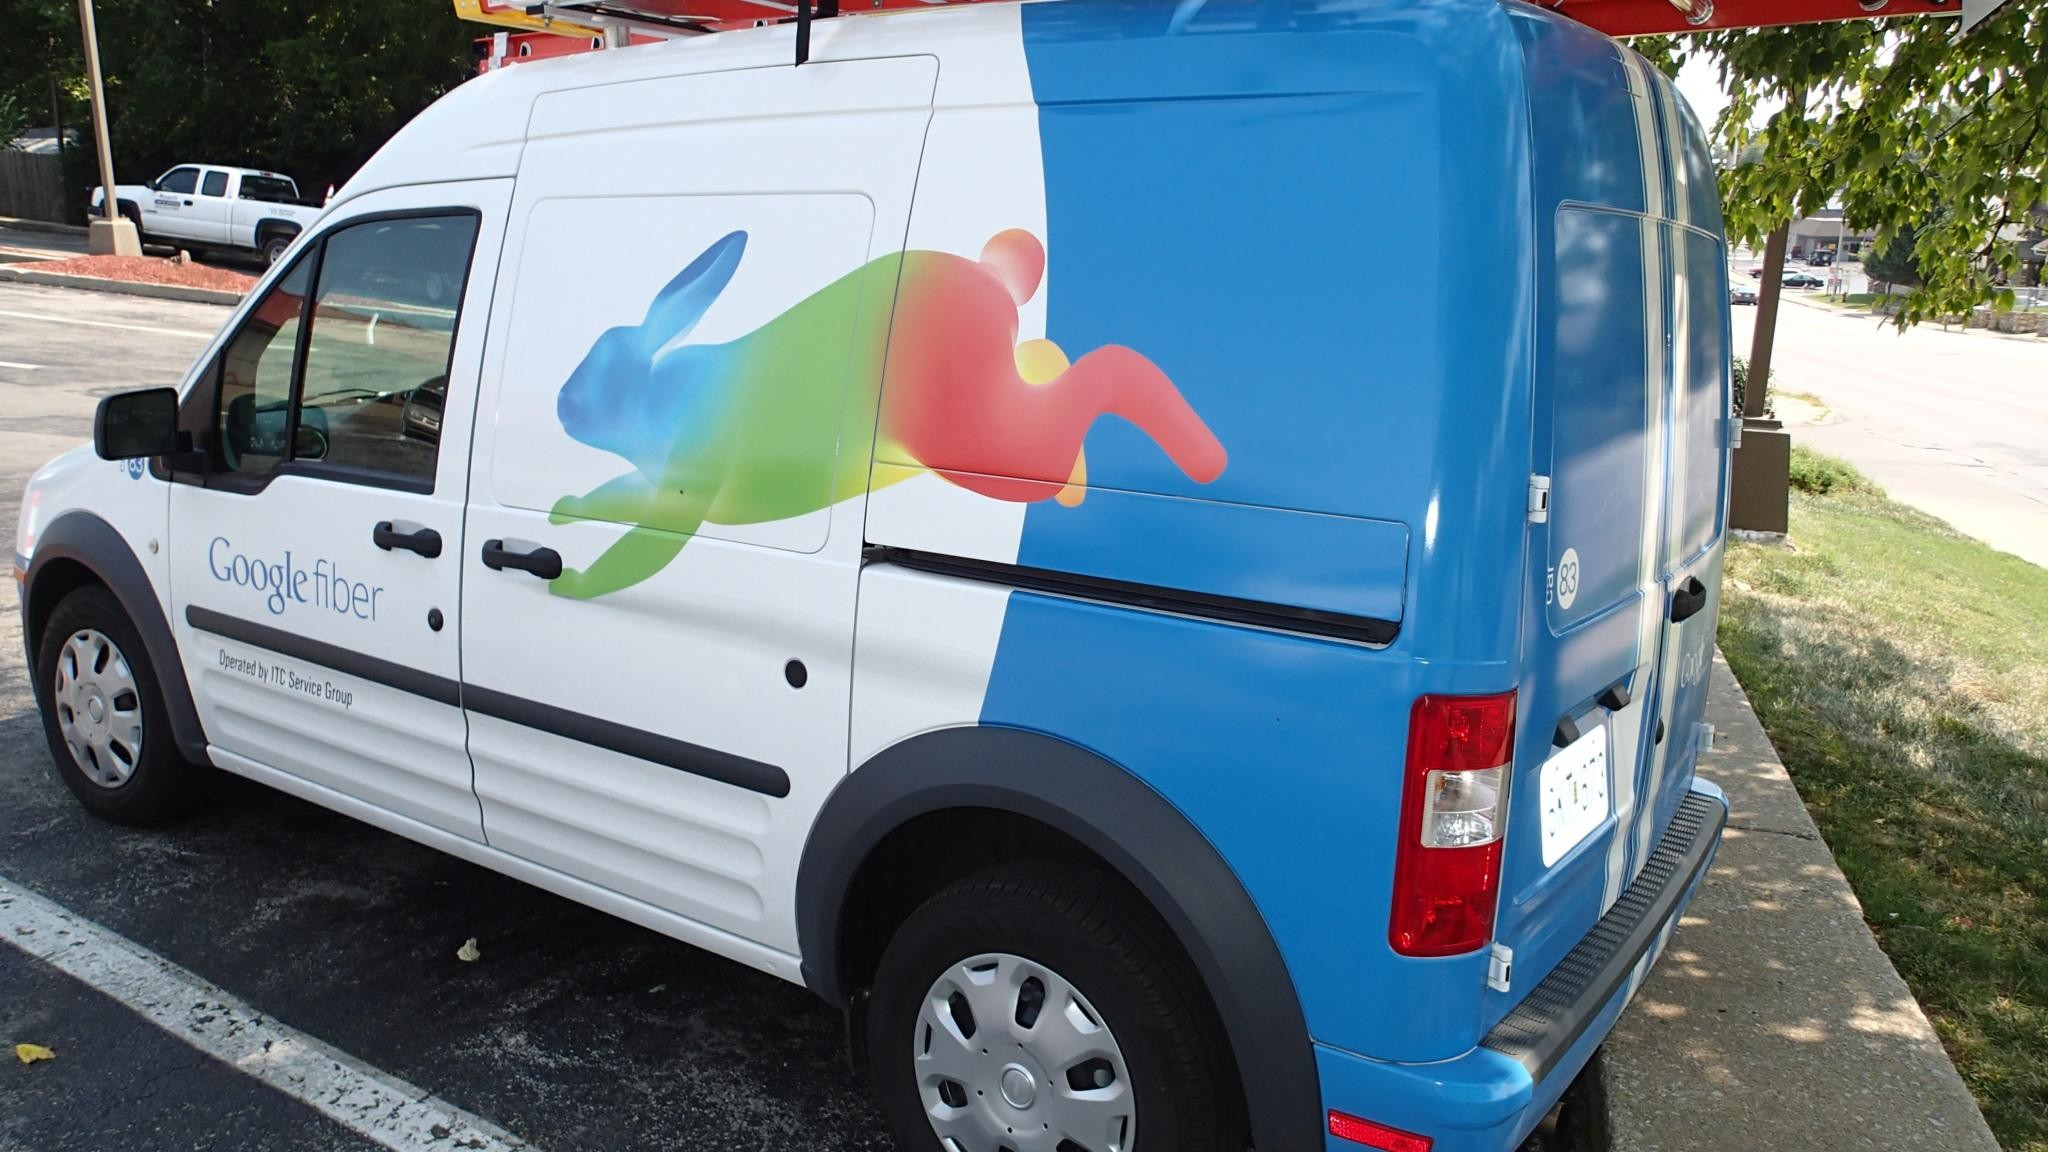 Google's Fiber Expansion Could Help the Comcast-Time Warner Cable Deal